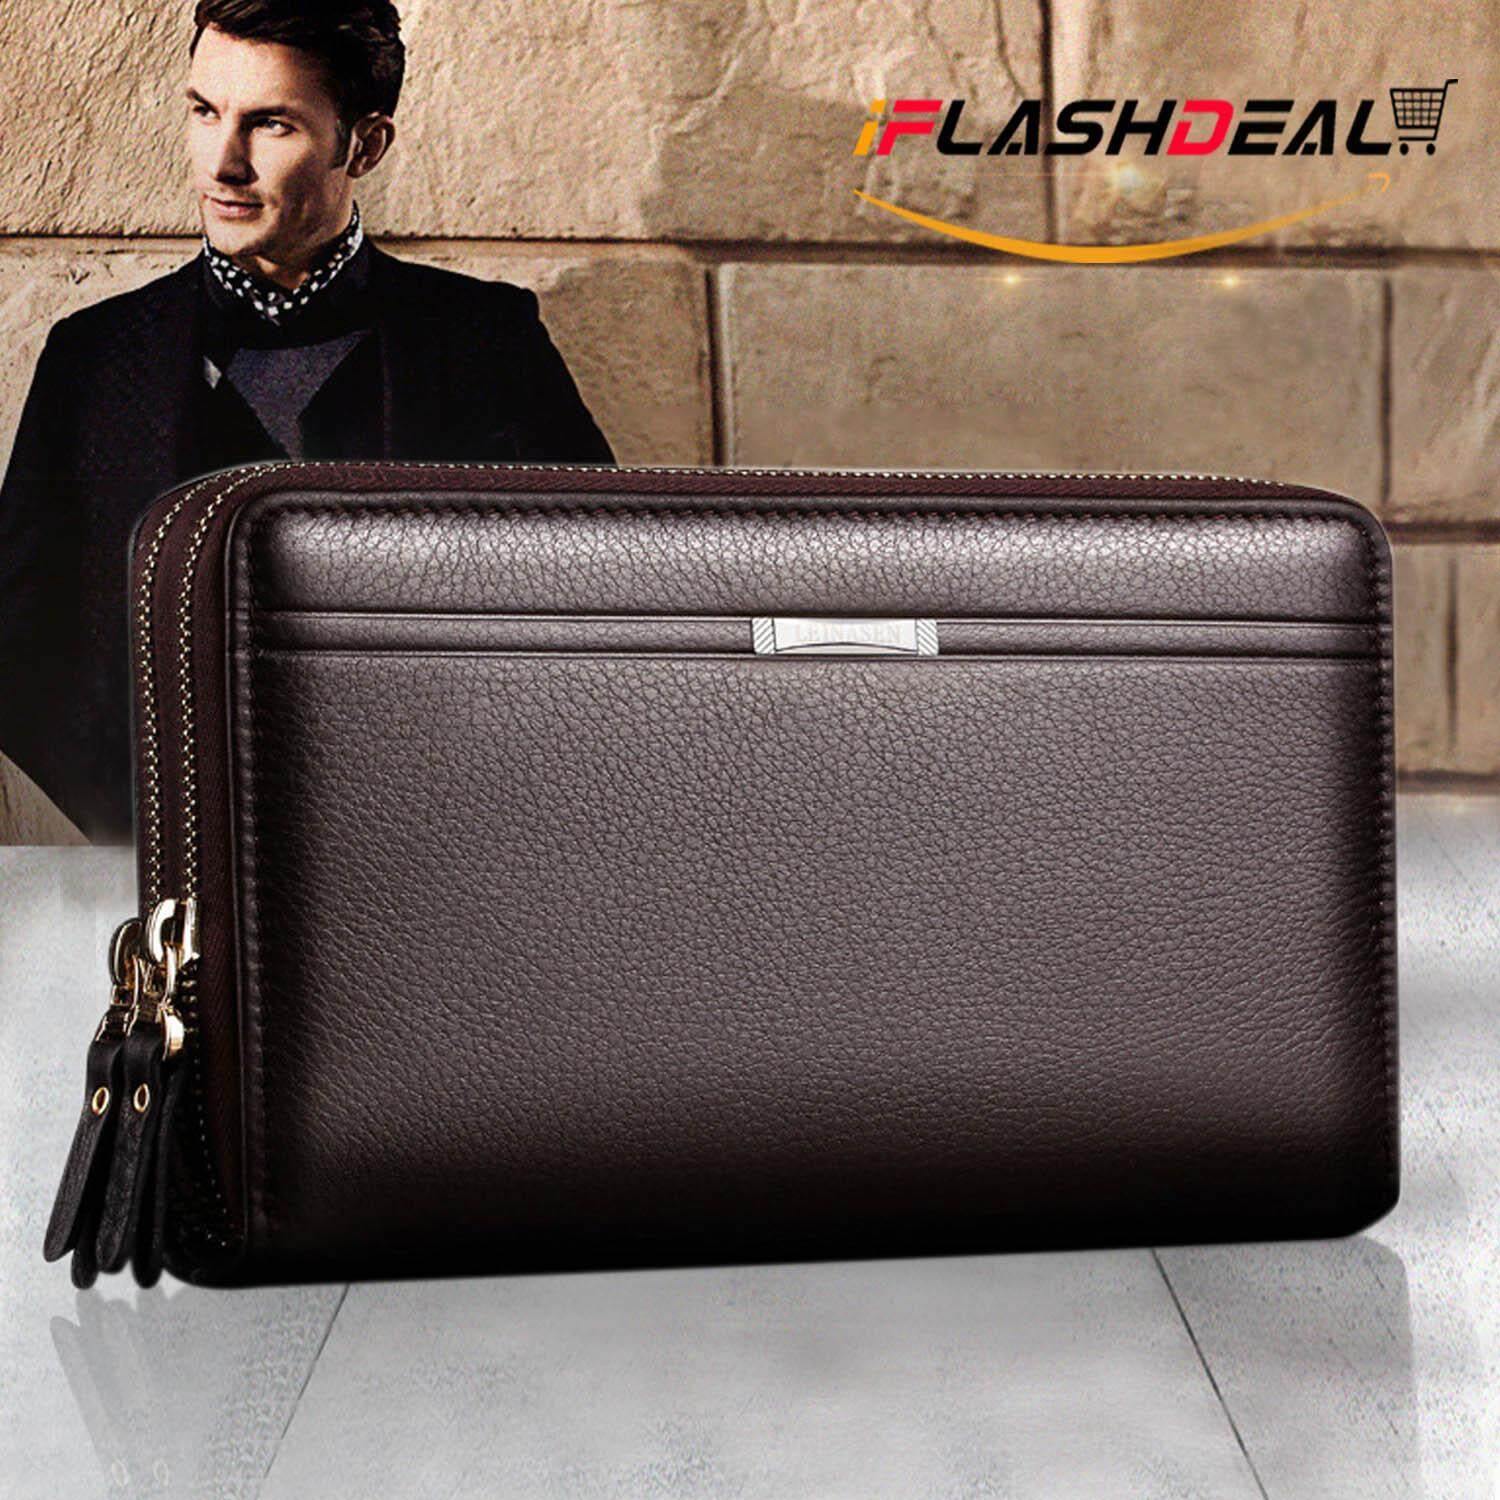 e584b6ca1f iFlashDeal Men Fashion Wallet PU Leather Mens Hand Bag Business Long Clutch Purse  Handbag for Phone